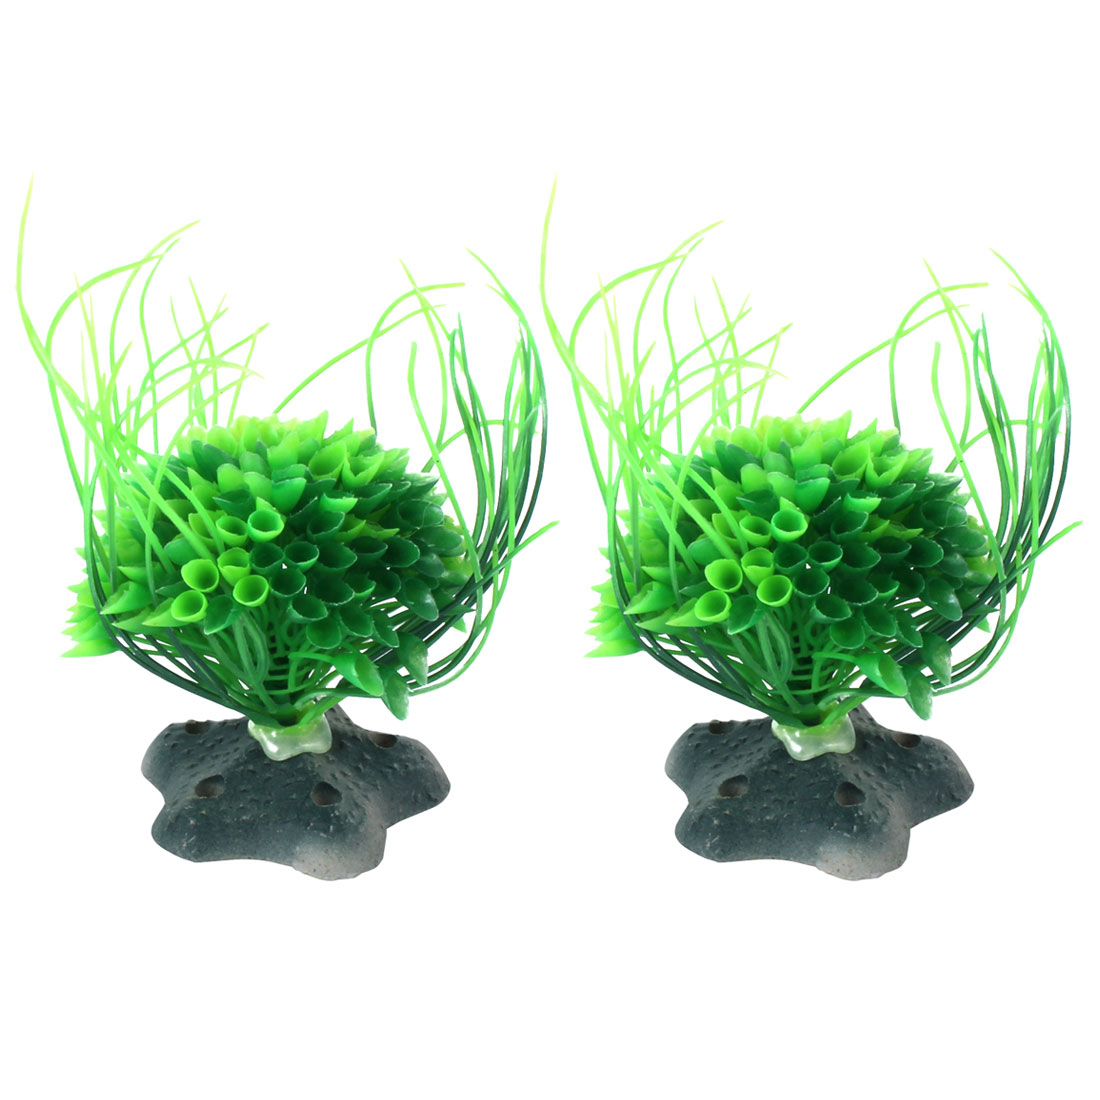 Home Aquarium Plastic Simulation Landscape Plant Grass Ornament Green 2pcs